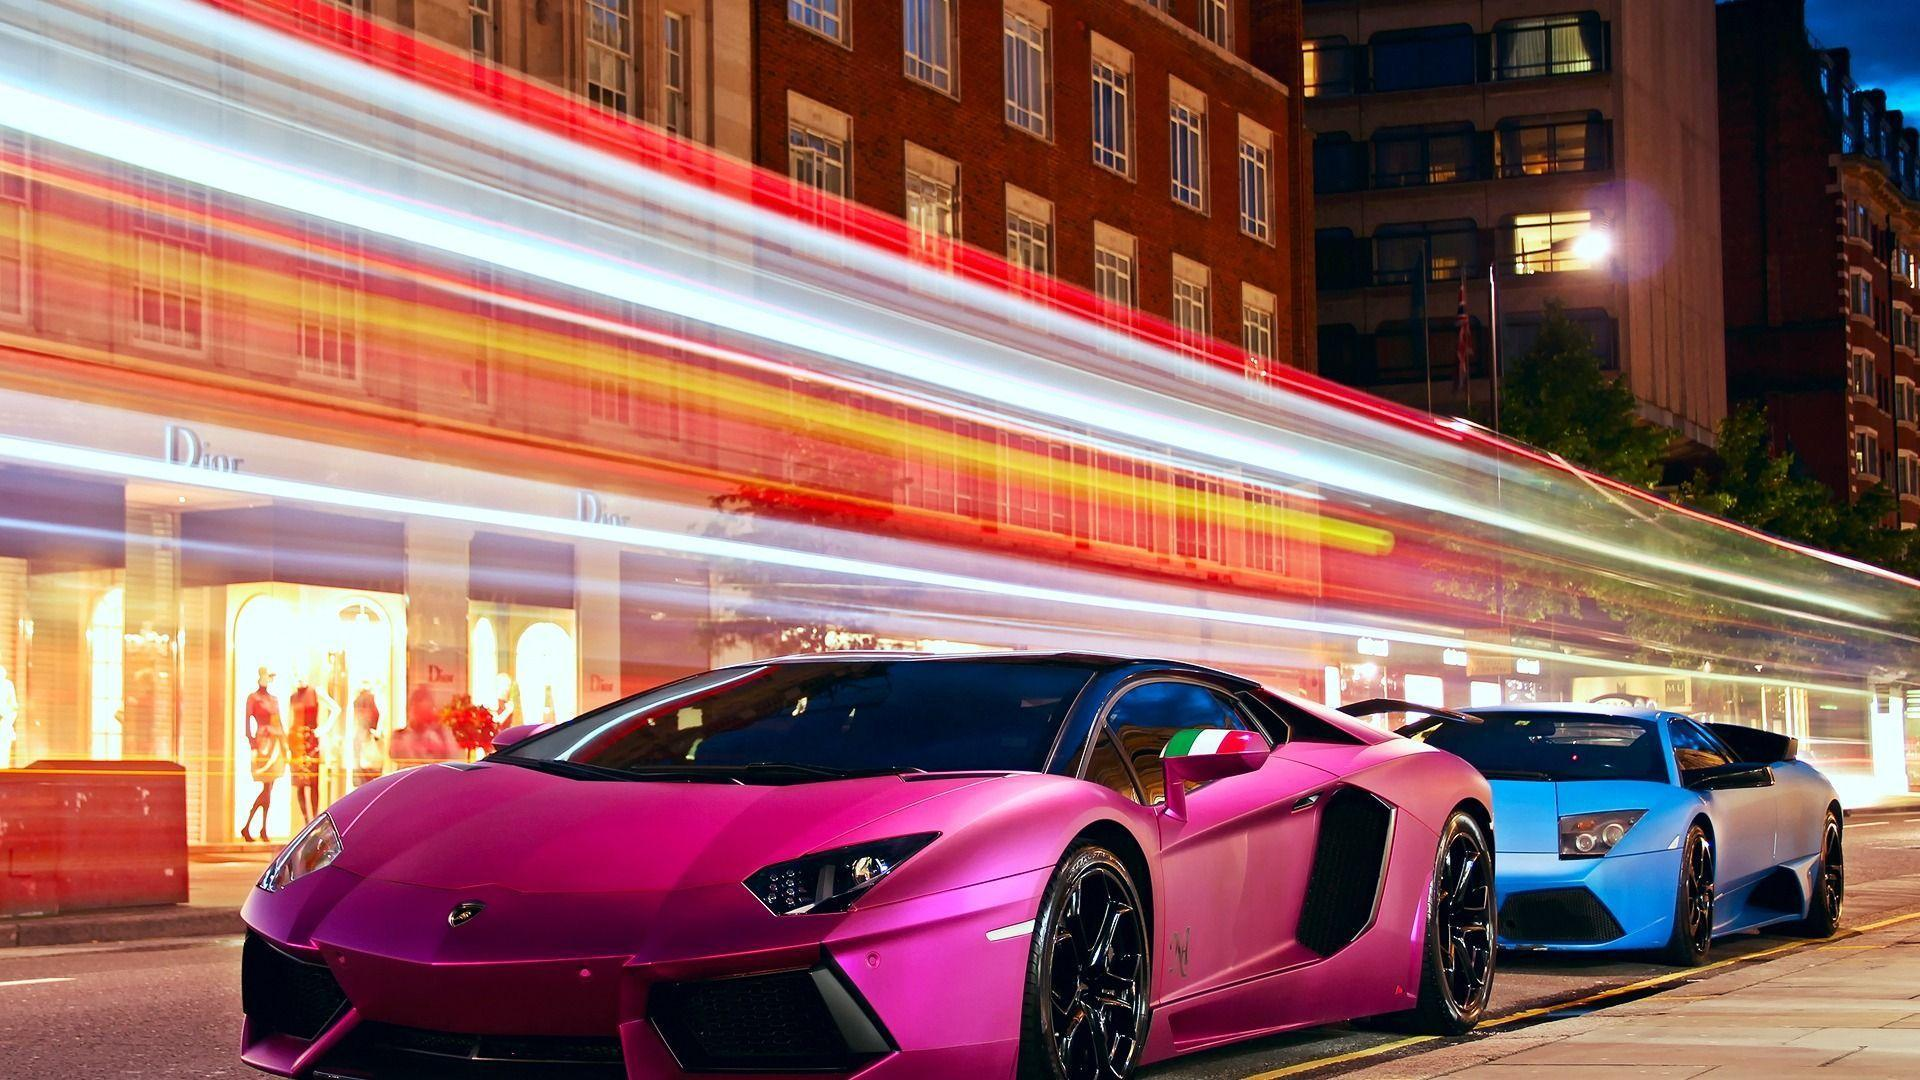 Pink Car Wallpapers - Wallpaper Cave